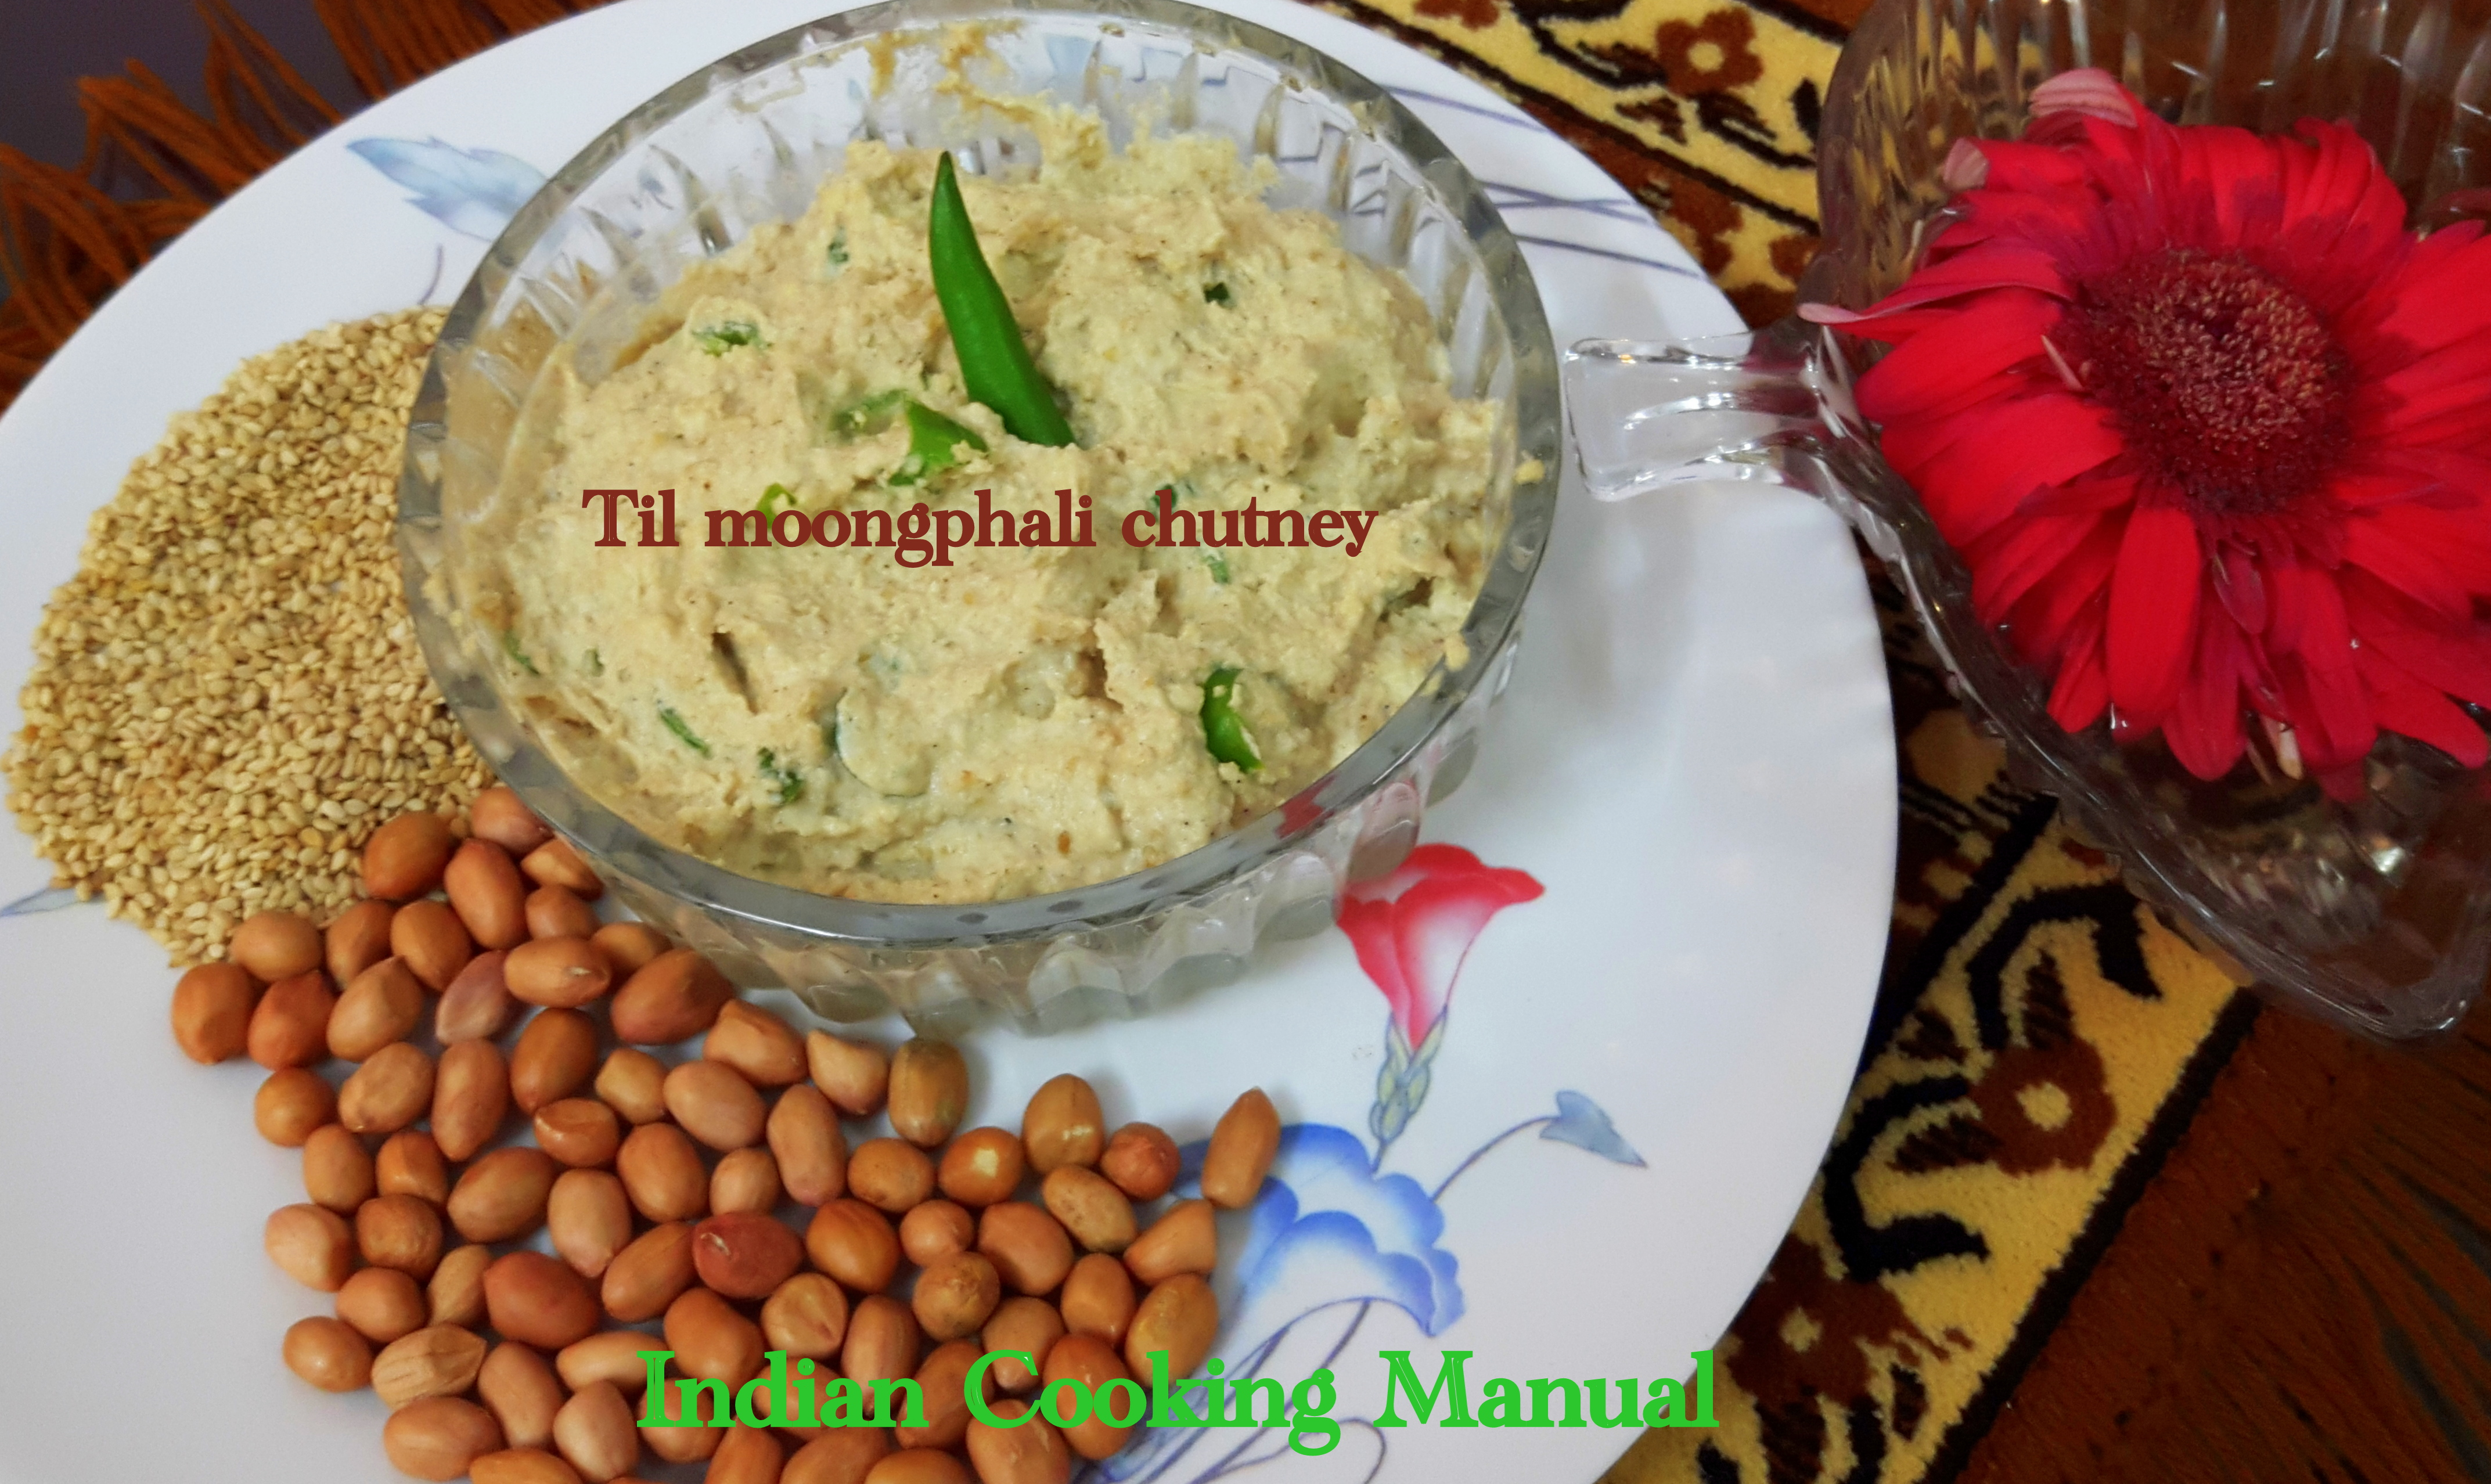 Til and moongphali chutney (peanut and sesame seed dip)